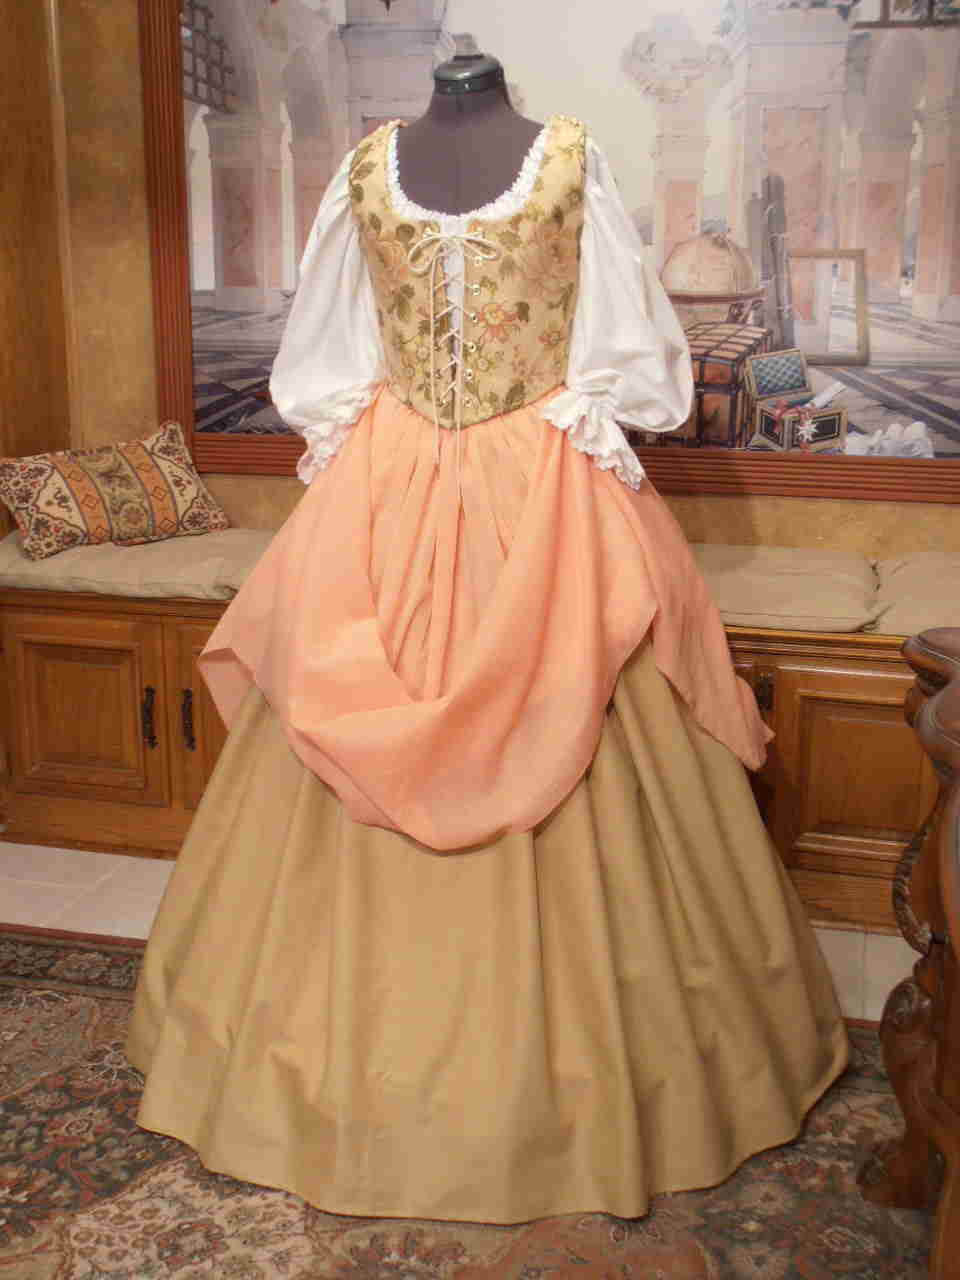 Peach and Tan Ensemble with Two Skirts  Faire Finery